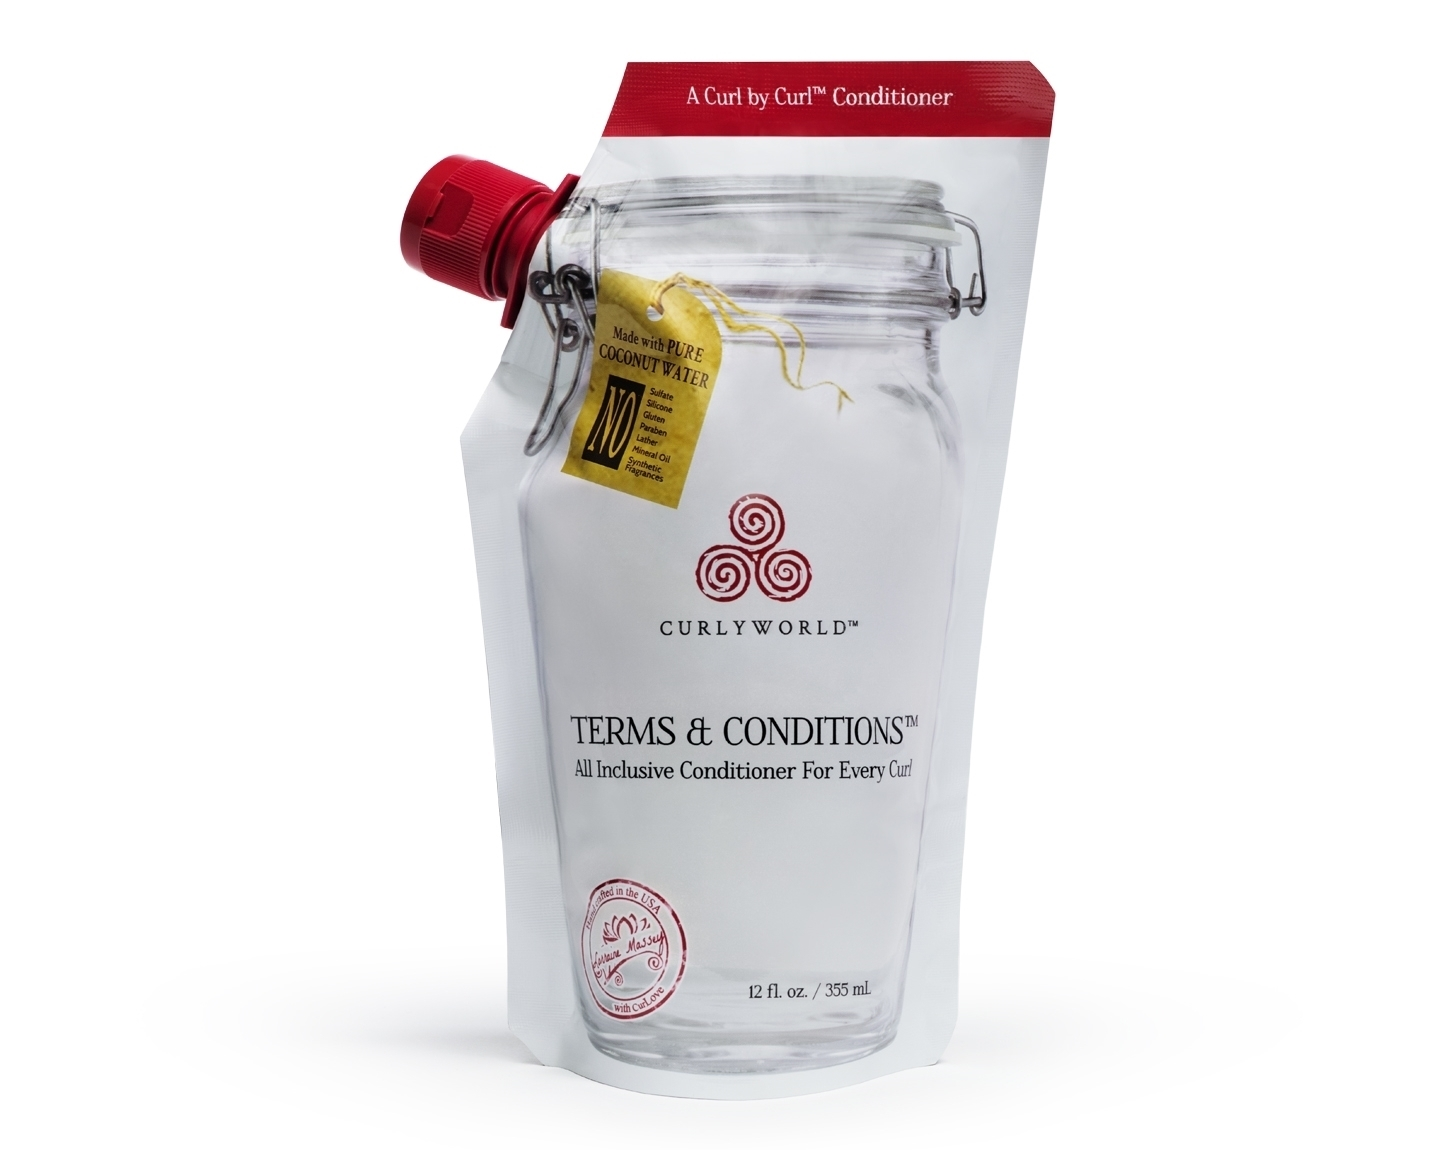 Terms & Conditions™ is a hyper-hydrating conditioner